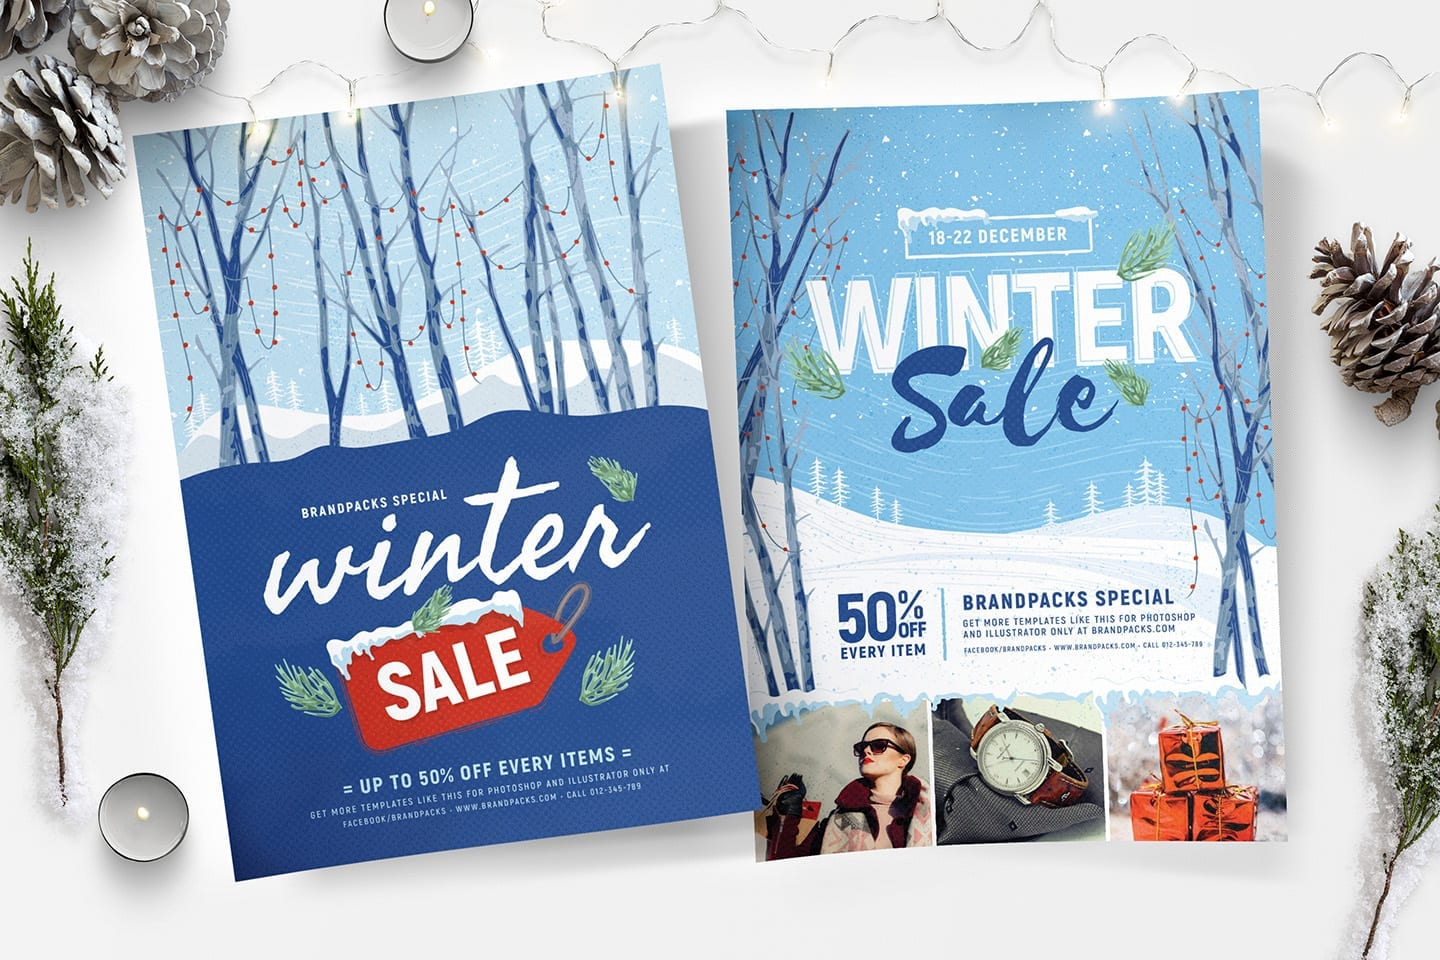 Winter Sale Poster Templates - Photoshop & Illustrator